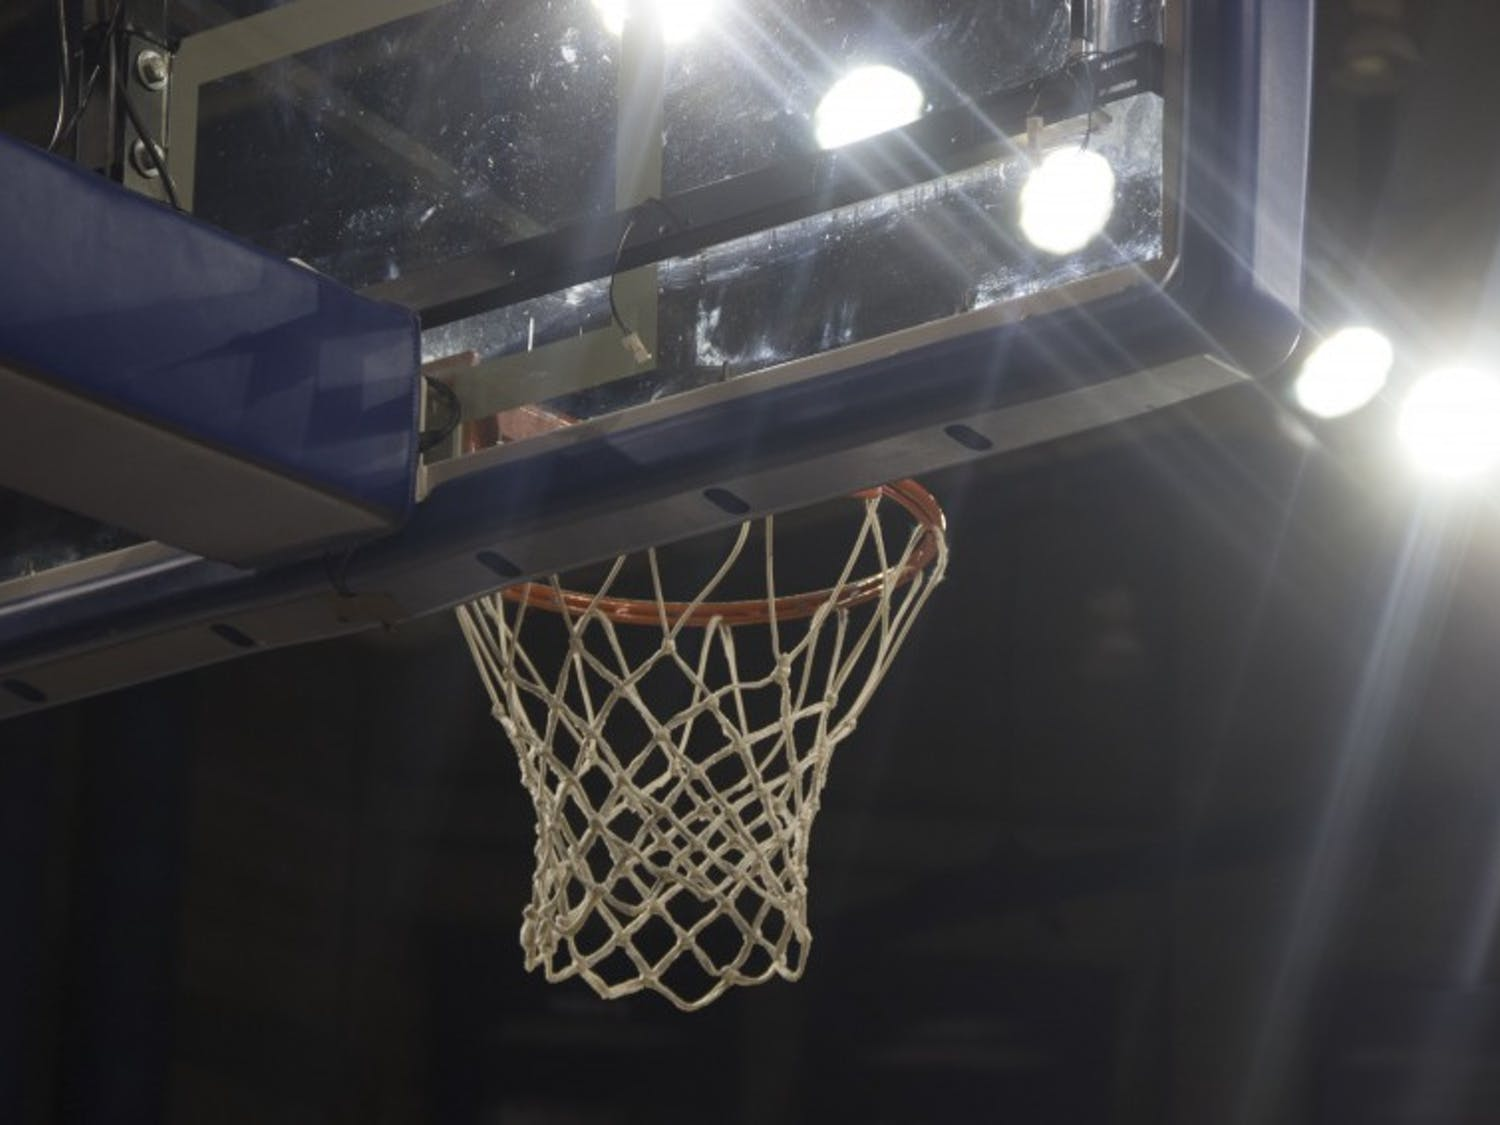 The 2018 Final Four begins Saturday when the Villanova Wildcats take on the Kansas Jayhawks followed by the Michigan Wolverines taking on the Loyola-Chicago Ramblers.